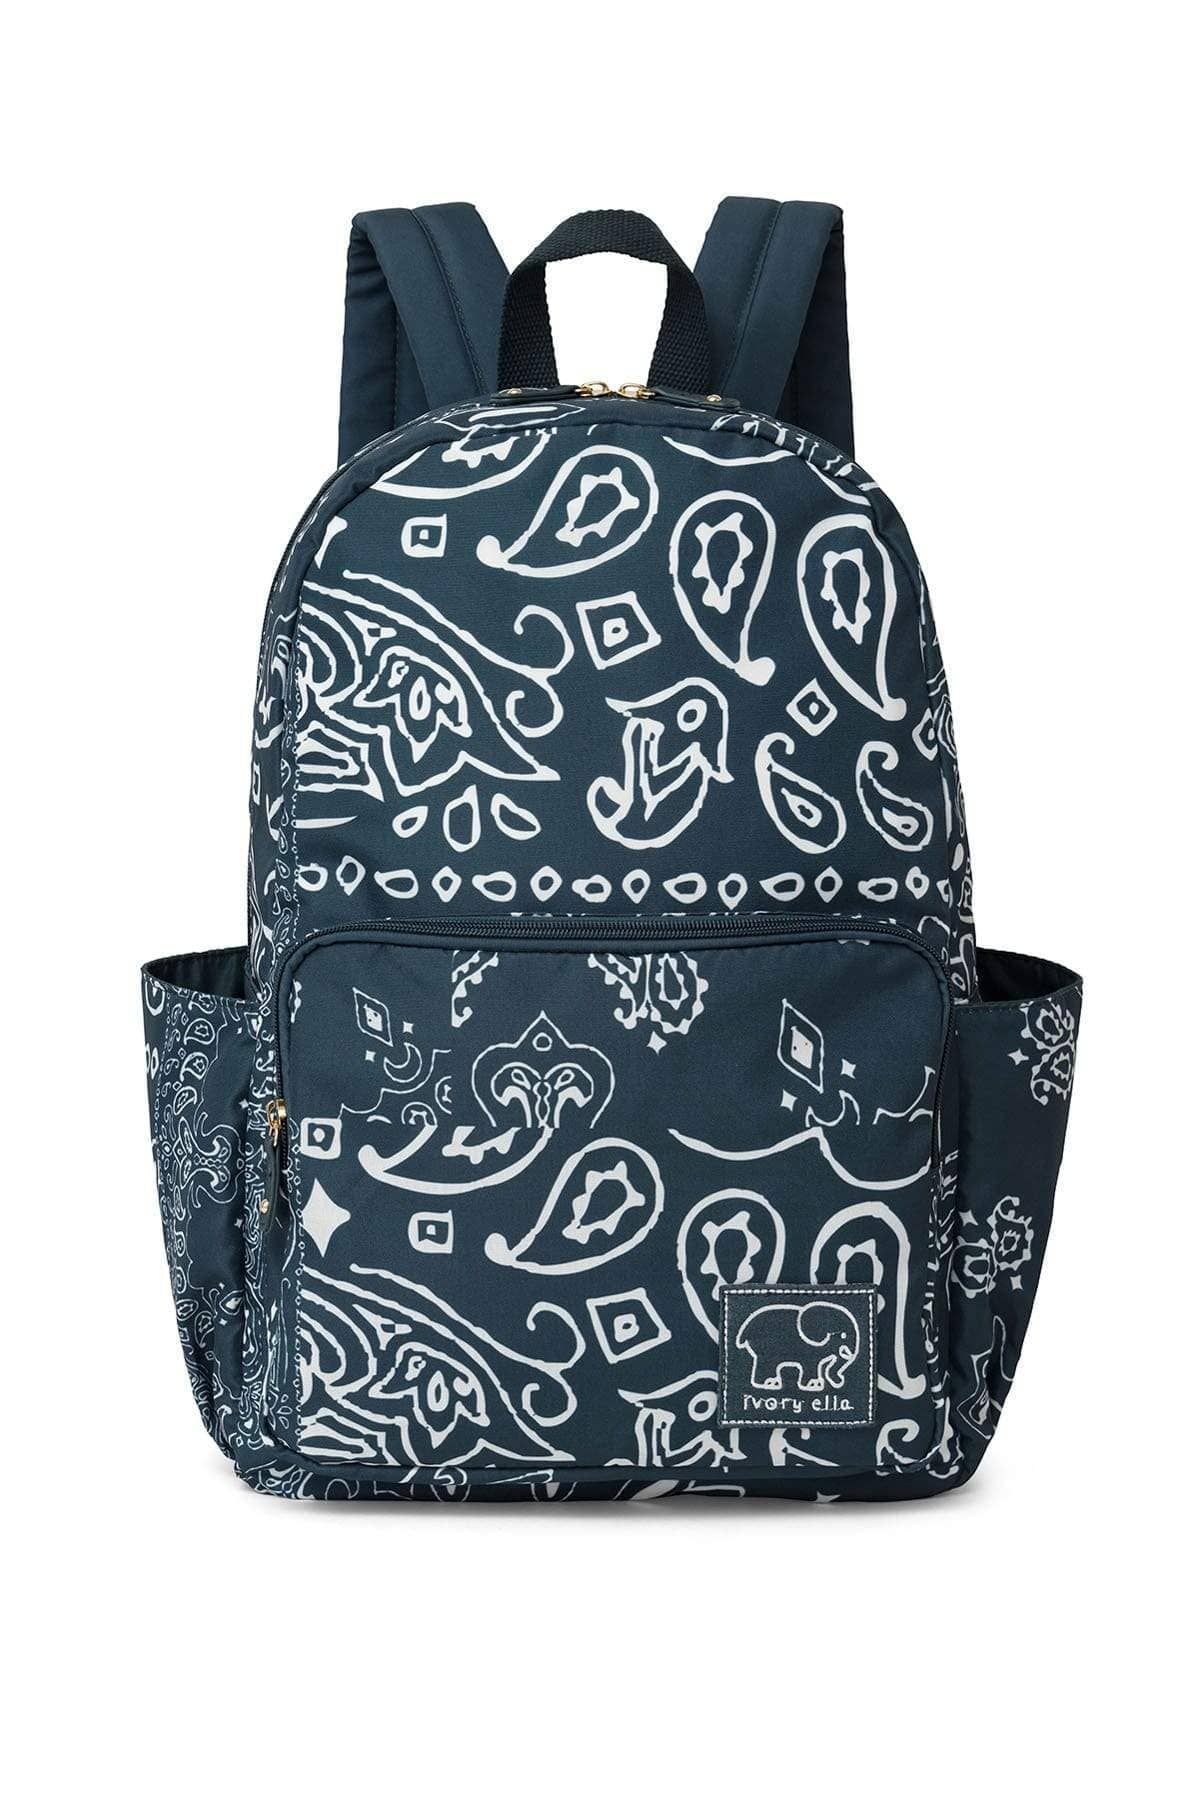 Stargazer Bandana Printed Backpack - Ivory Ella - Accessories